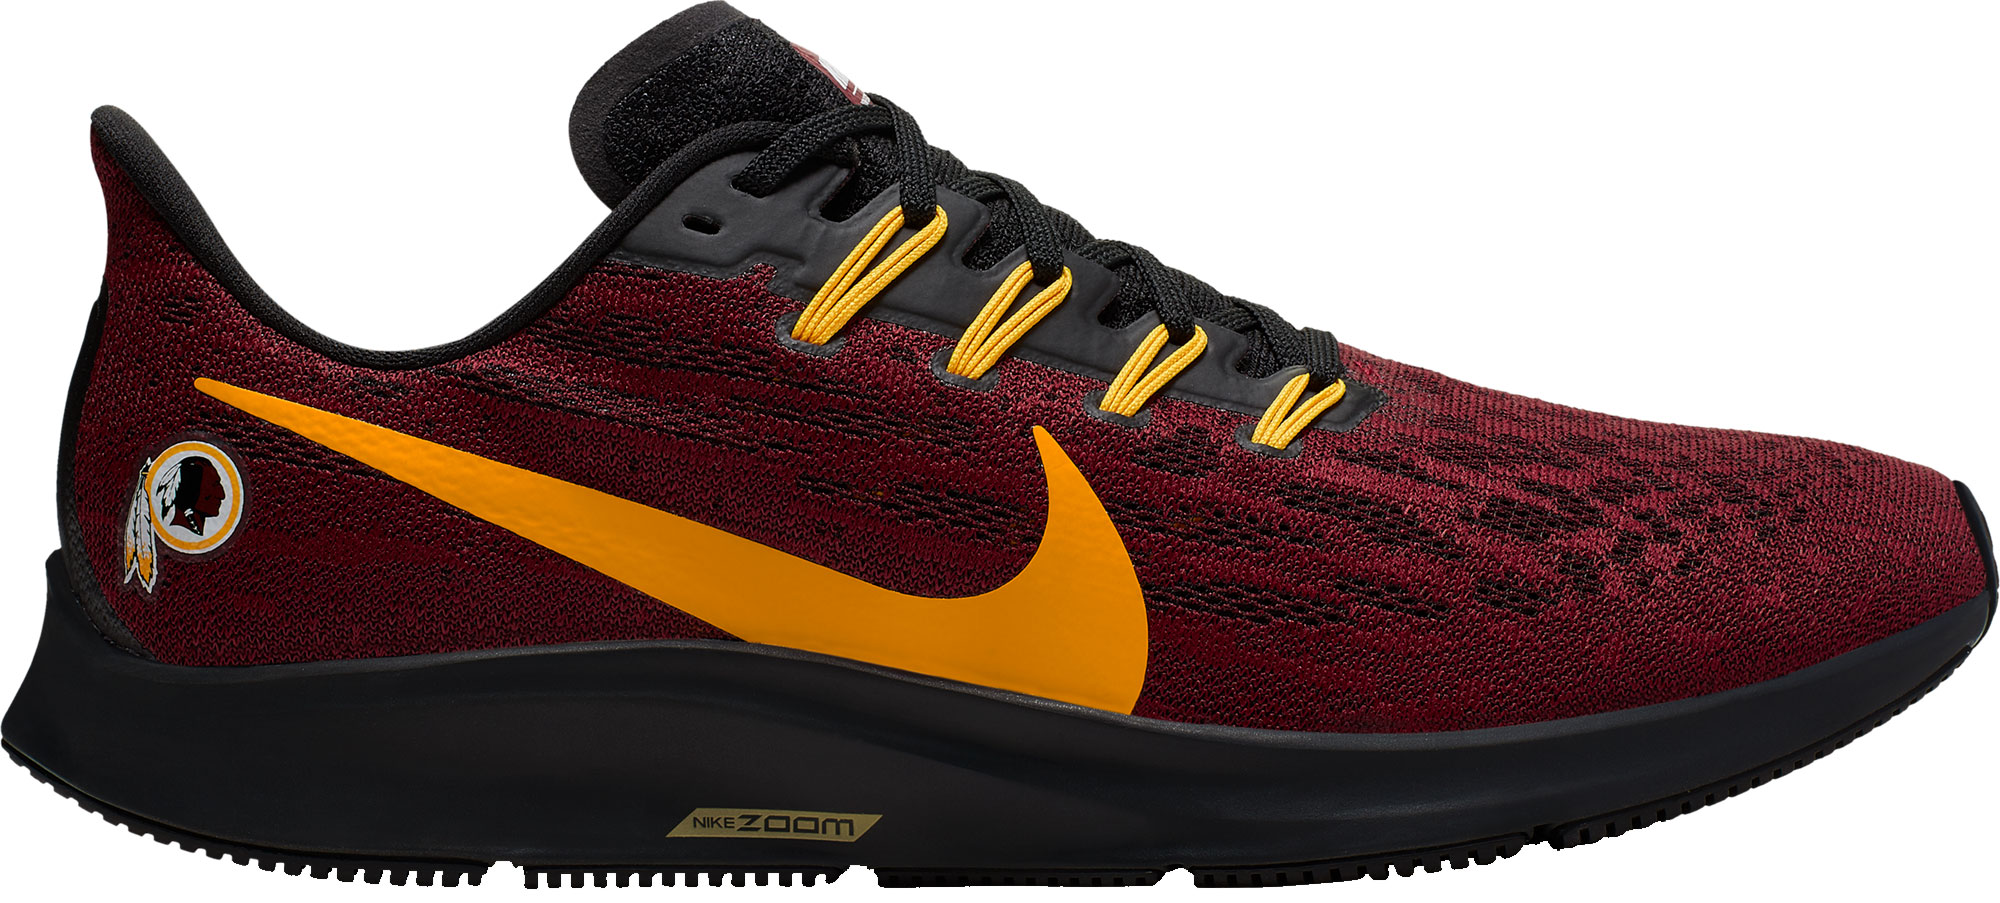 isla Periódico Cartero  Here's how you can purchase customized Redskins Nike shoes   RSN